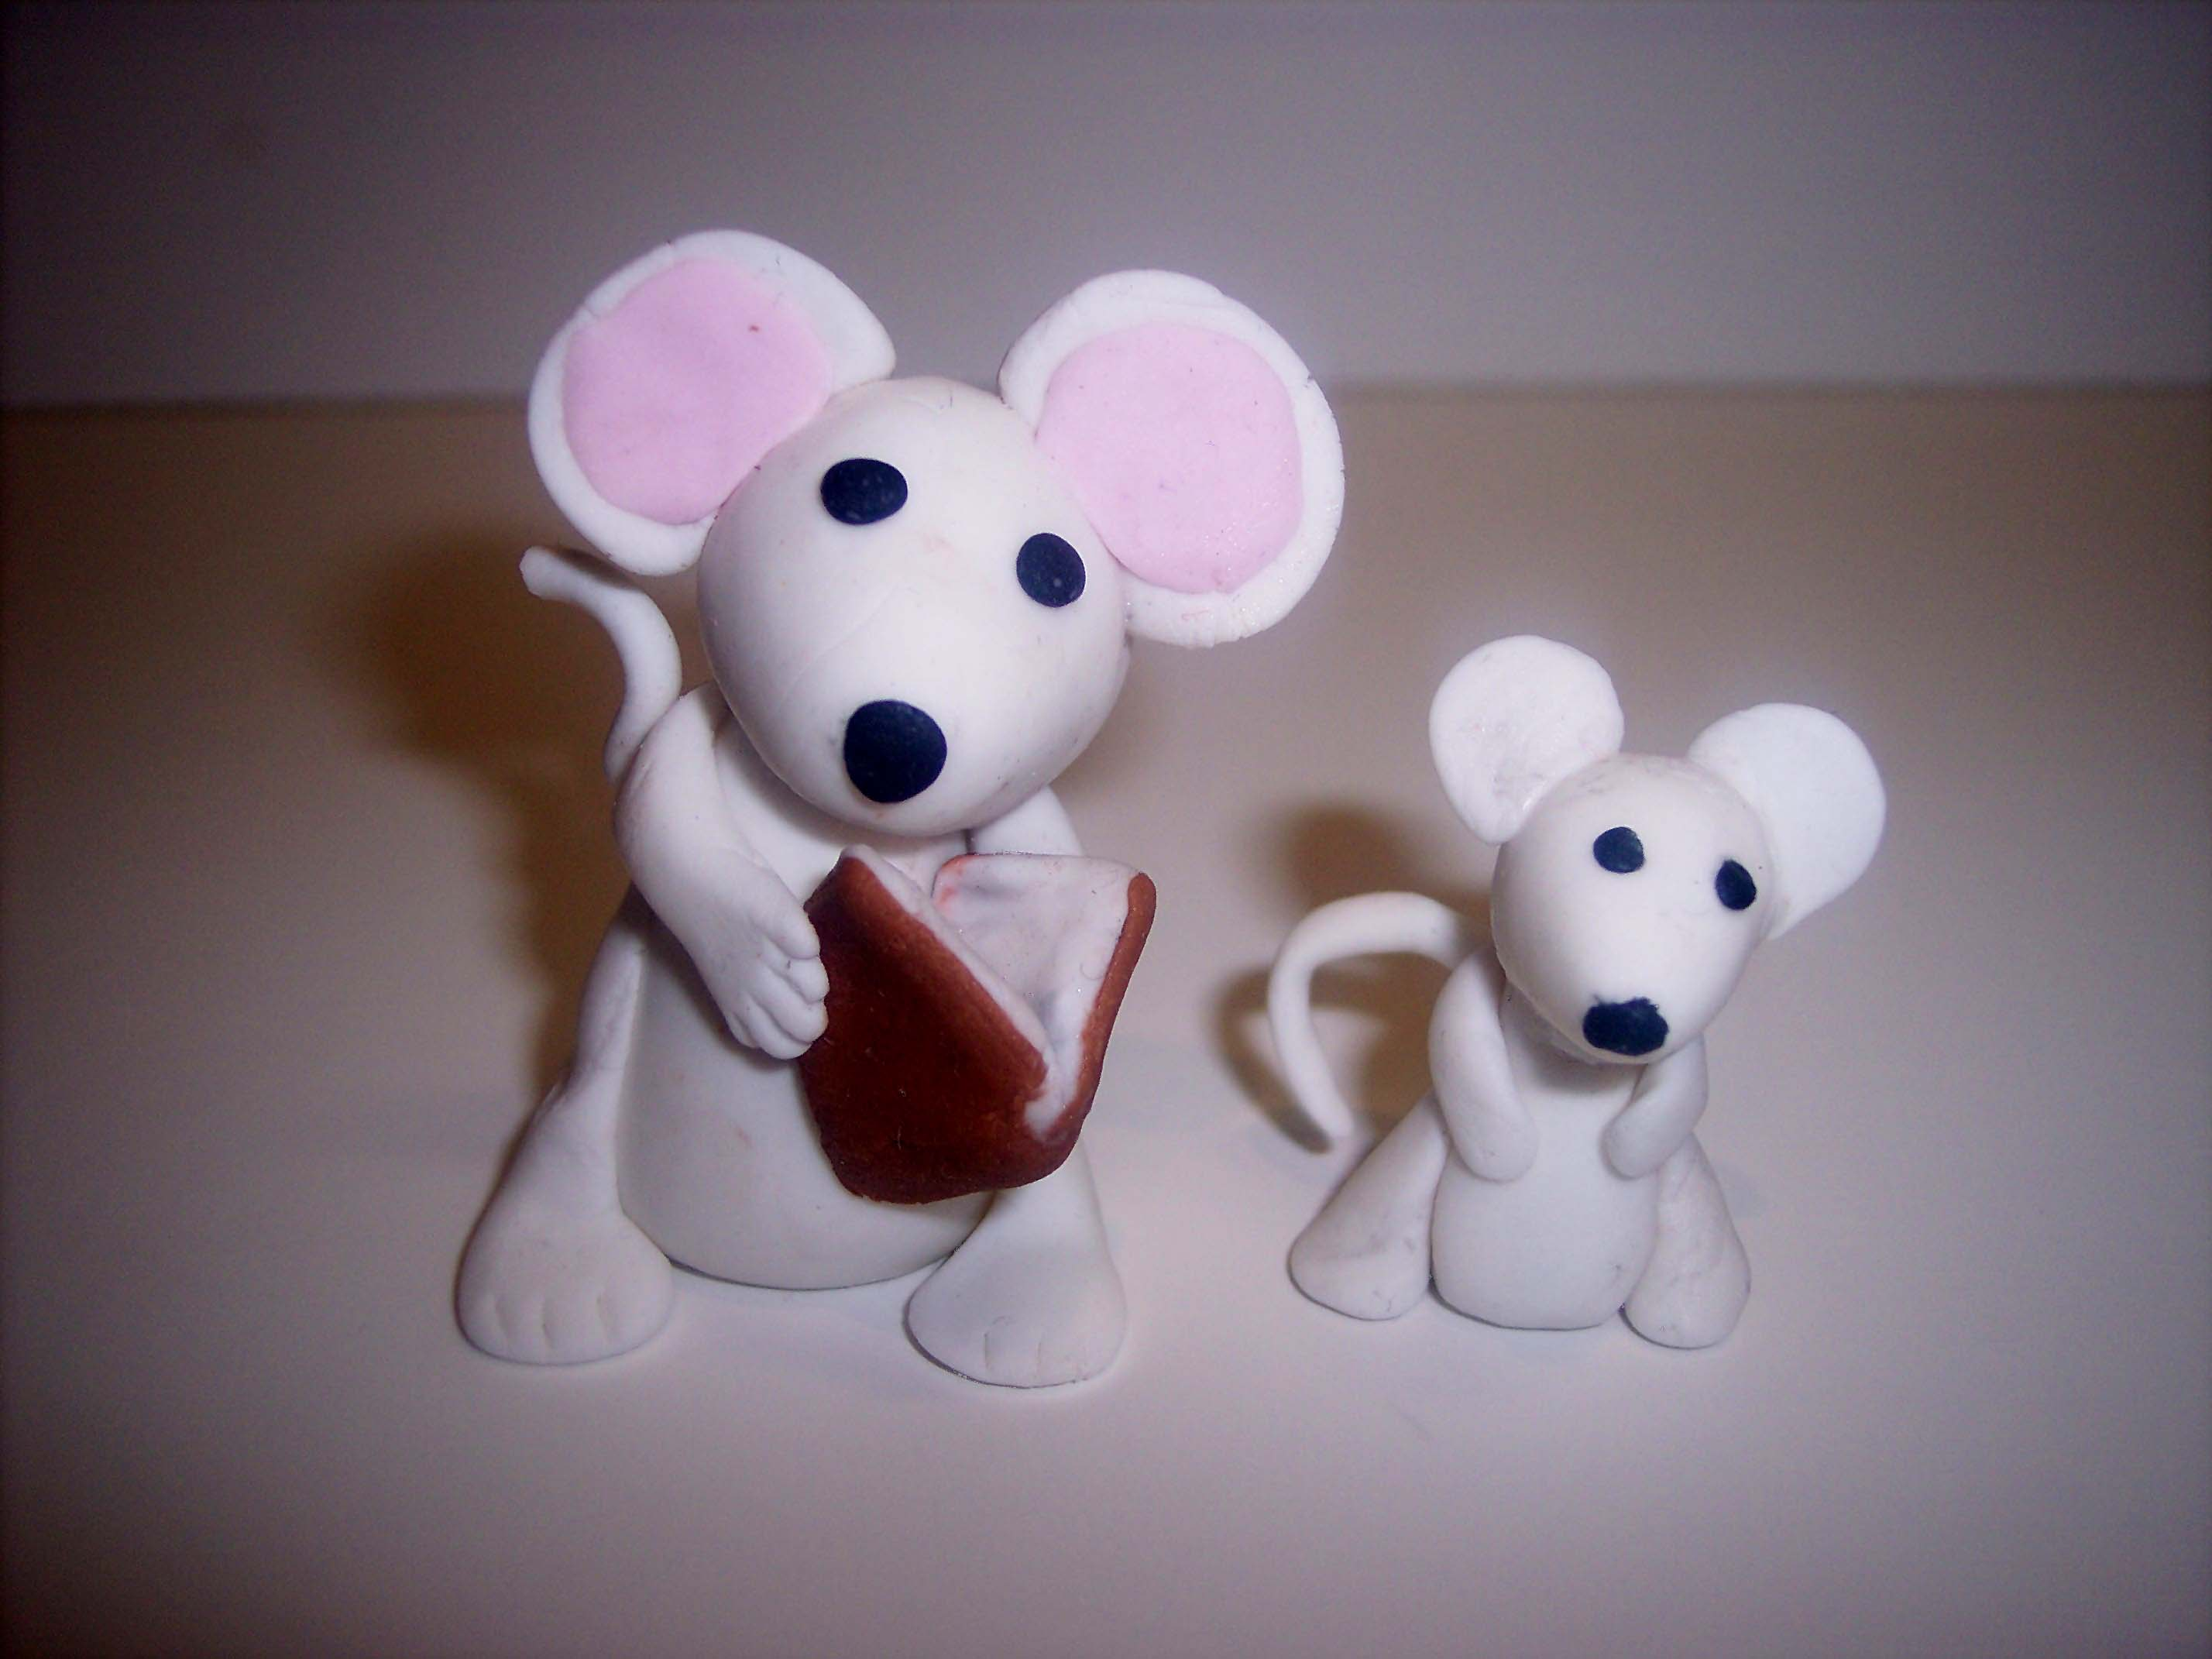 Gumpaste Sculpted Animals and Figurines Are All The Rage ...